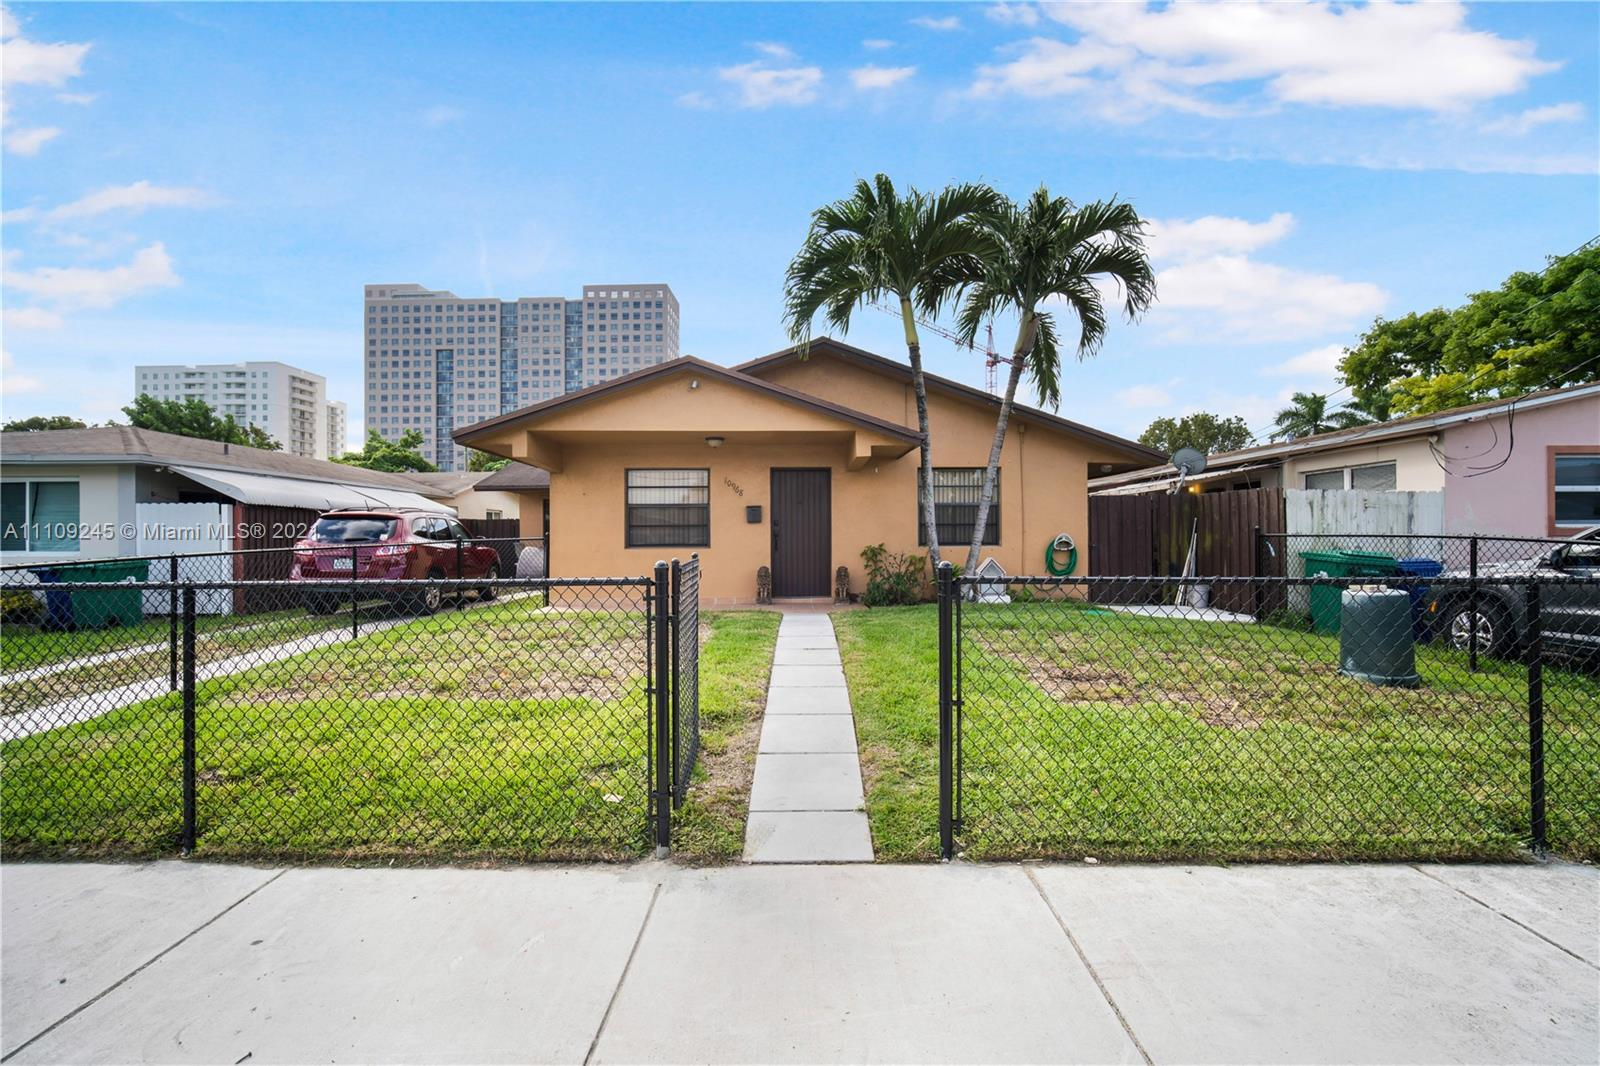 10966 SW 5th St, Sweetwater, Florida 33174, ,Residential Income,For Sale,5th St,A11109245